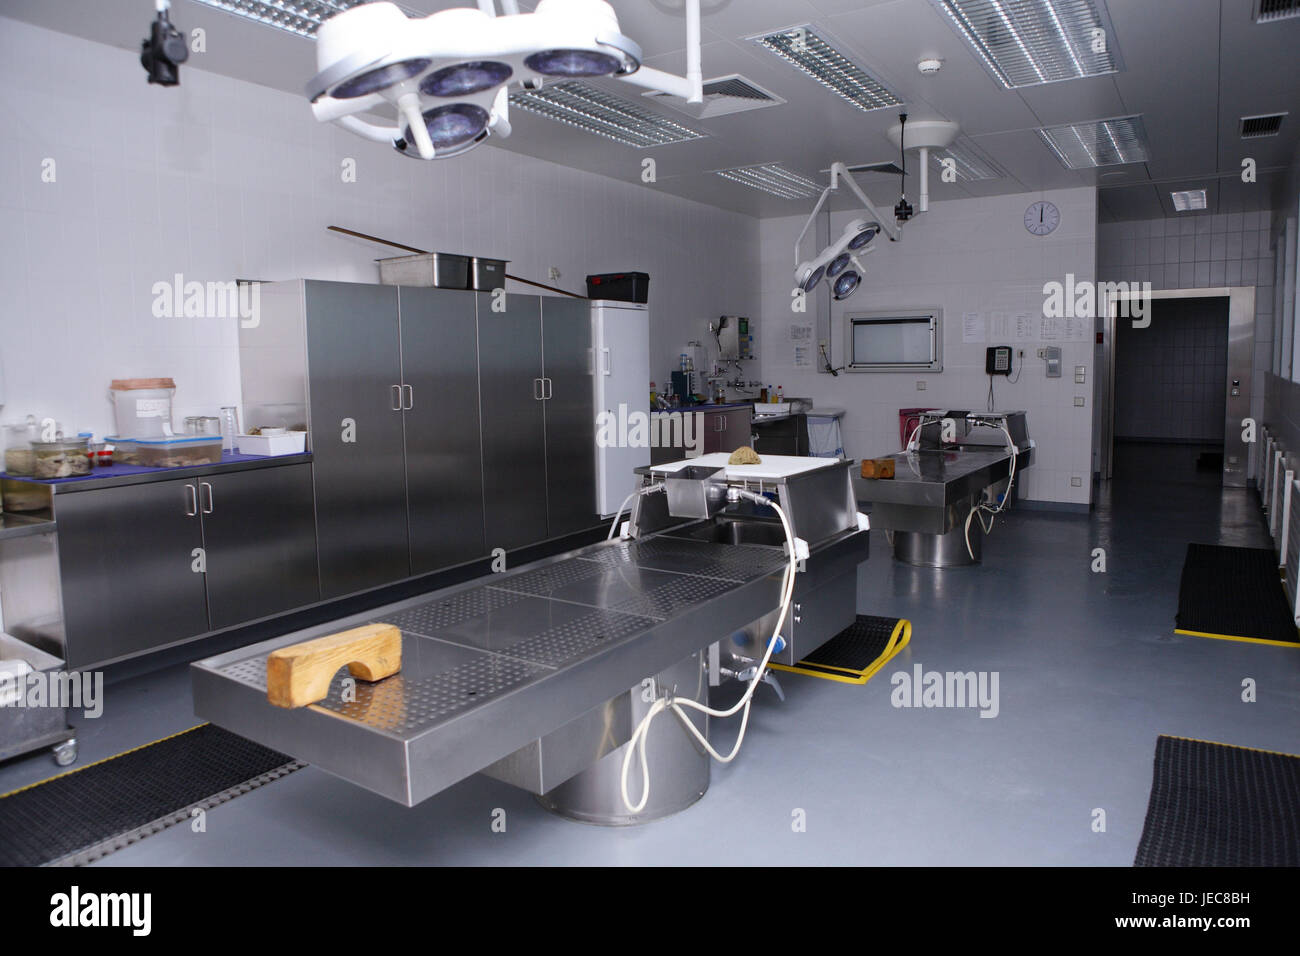 Hospital, pathological-anatomical department, Prosektur, dissected broad, medicine, hospital department, morgue, Stock Photo